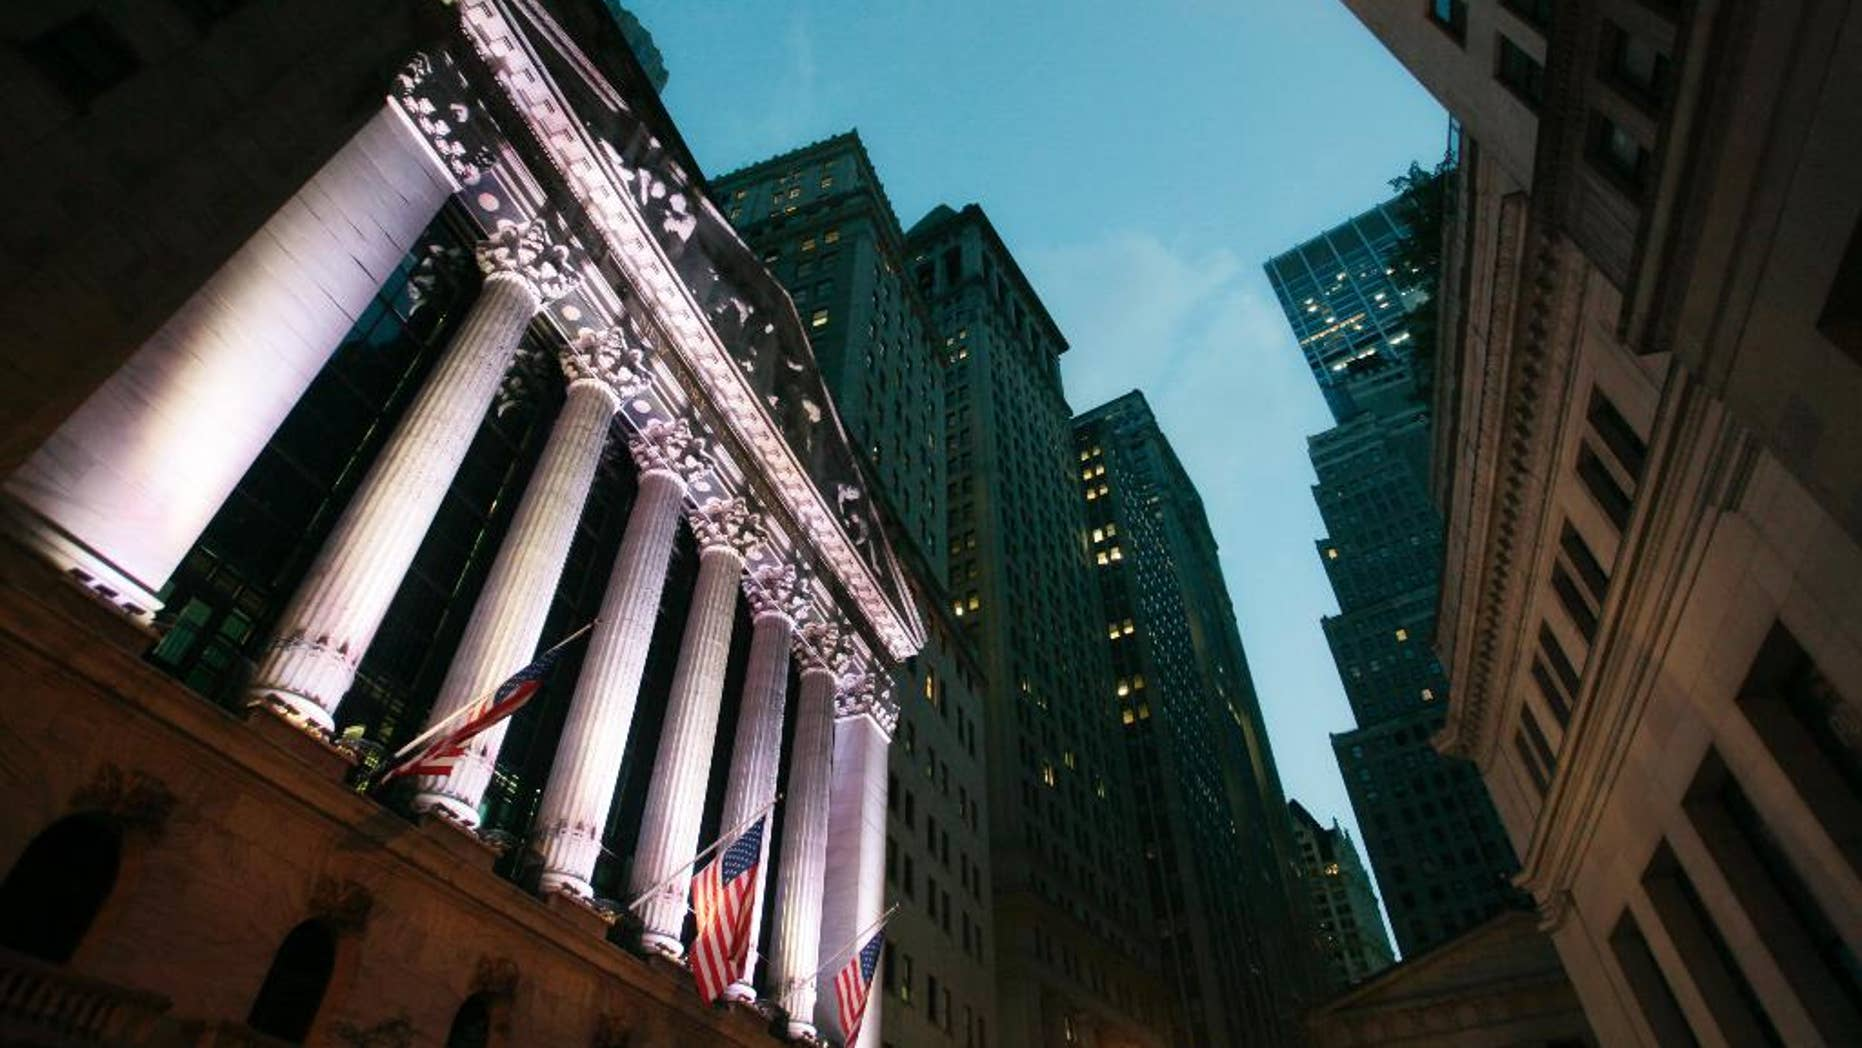 FILE - In this Oct. 8, 2014 file photo, American flags fly in front of the New York Stock Exchange, in New York. Stocks are little changed in early trading Monday, Nov. 3, 2014, as investors brace for a busy week of news. (AP Photo/Mark Lennihan, File)